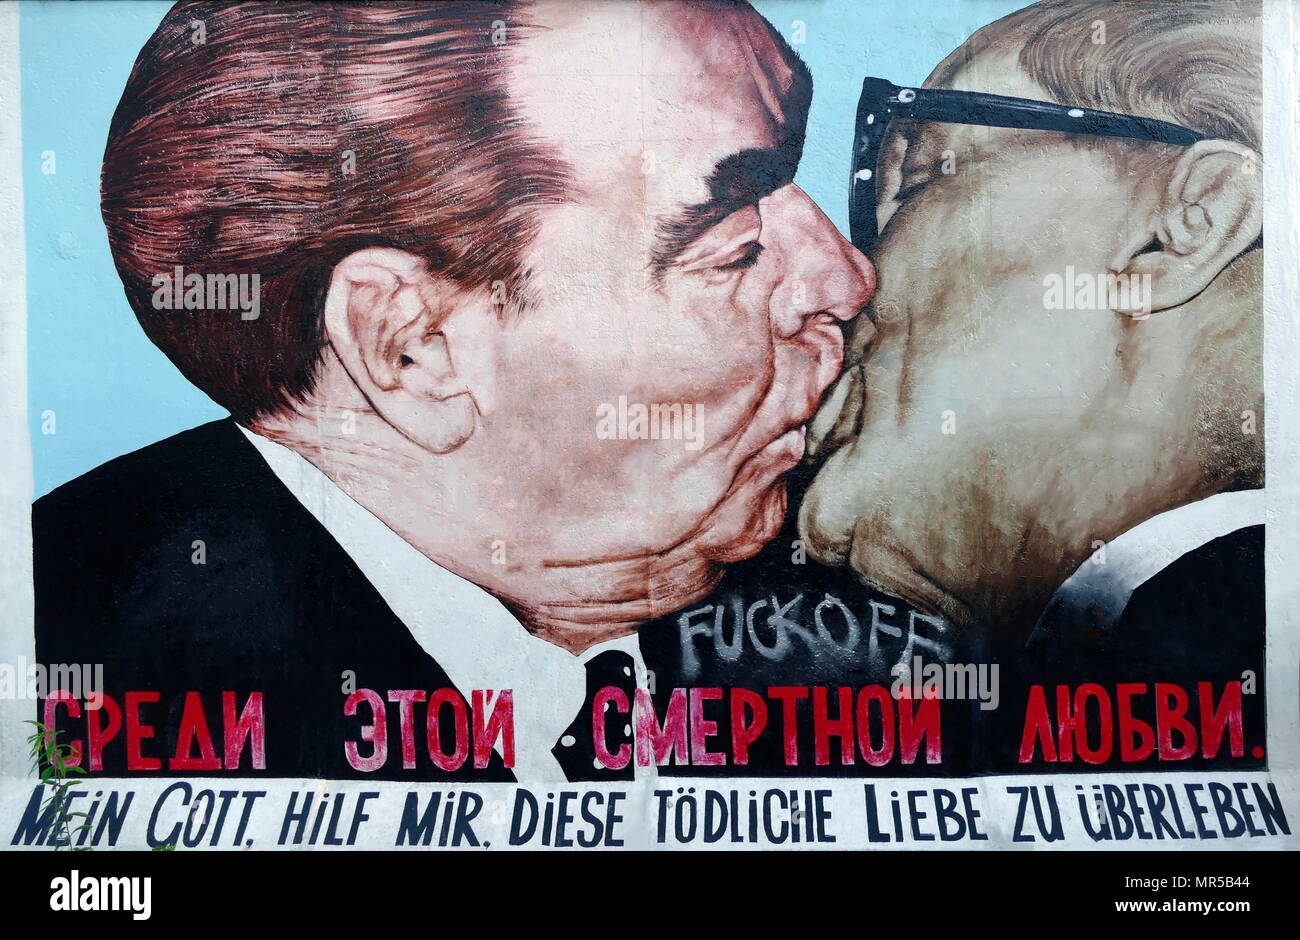 Photograph of graffiti on the Berlin Wall depicting Leonid Brezhnev (1906-1982) the former General Secretary of Central Committee of the Communist Party of the Soviet Union, embracing Erich Honneker (1912-1994) a German politician, who as the General Secretary of the Socialist Unity Party, led the German Democratic Republic from 1971 until the weeks preceding the fall of the Berlin Wall . Dated 21st Century Stock Photo